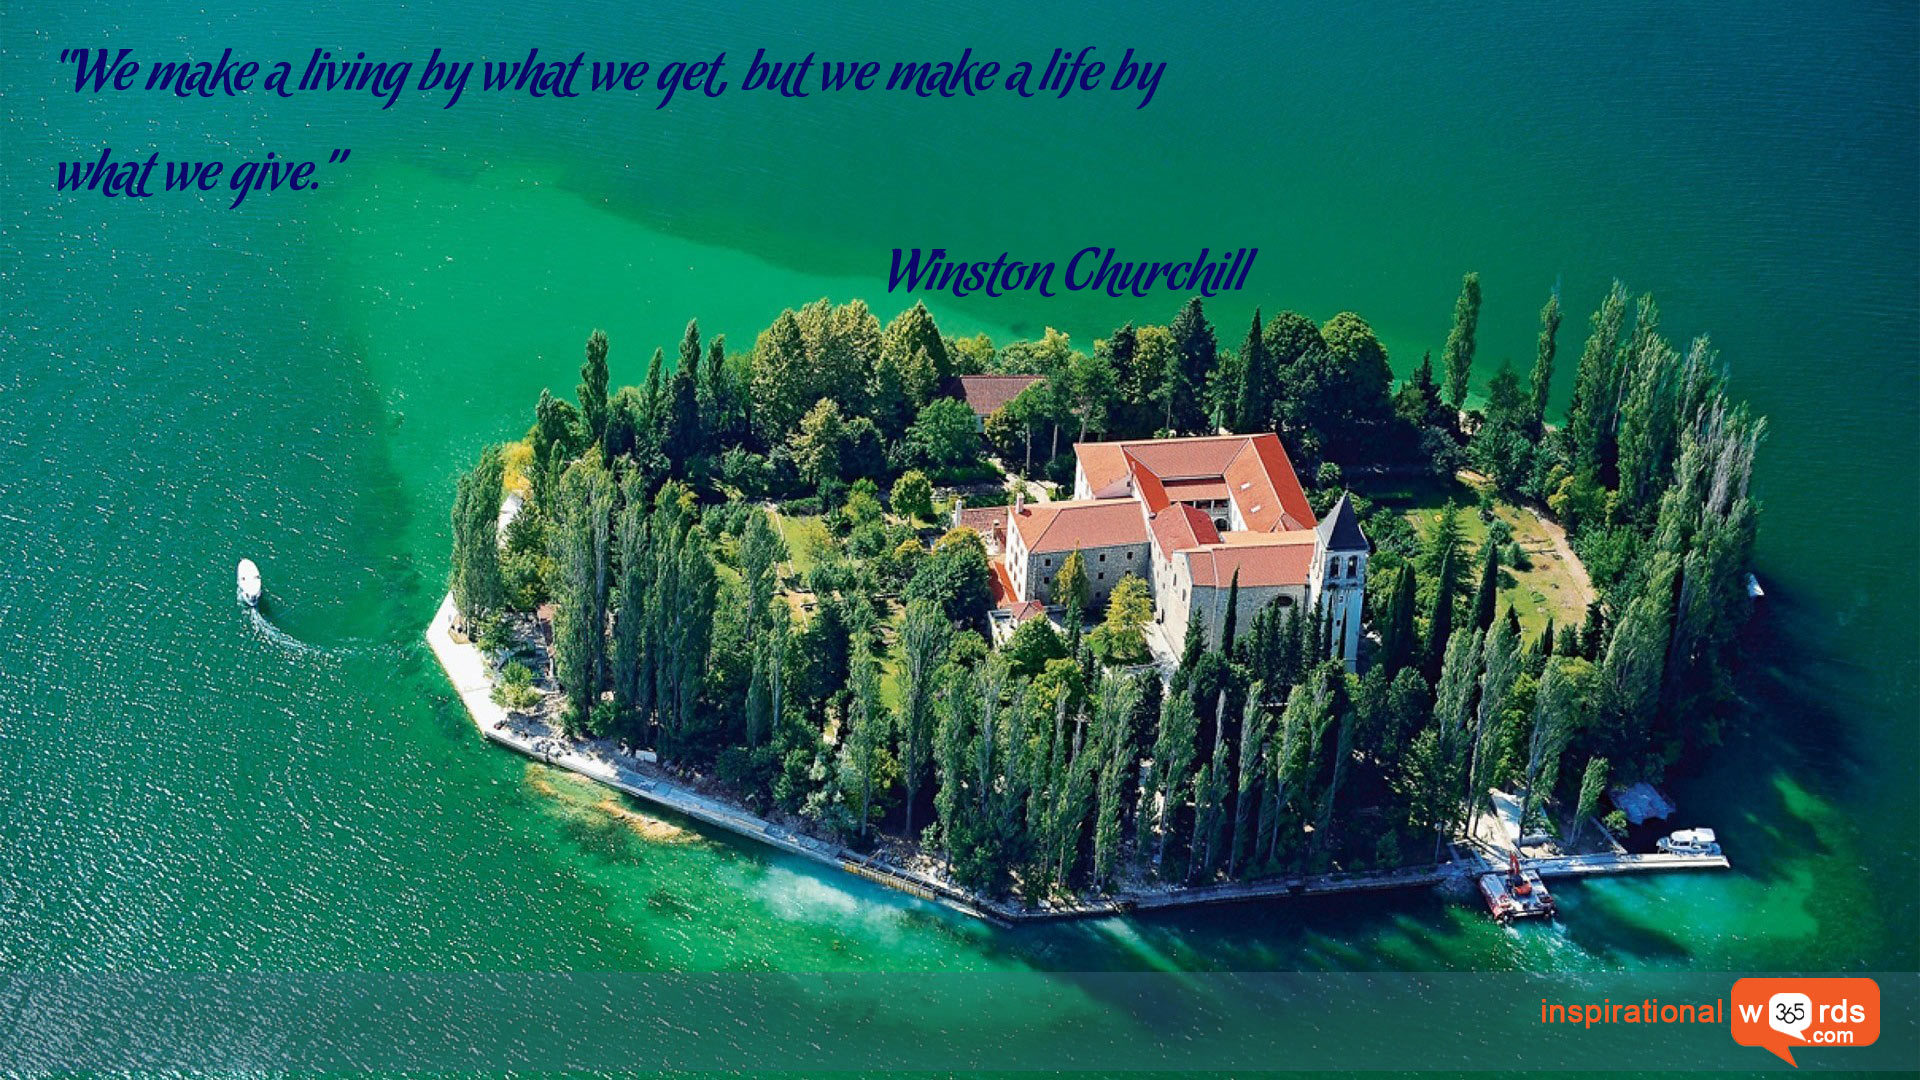 Inspirational Wallpaper Quote by Winston Churchill